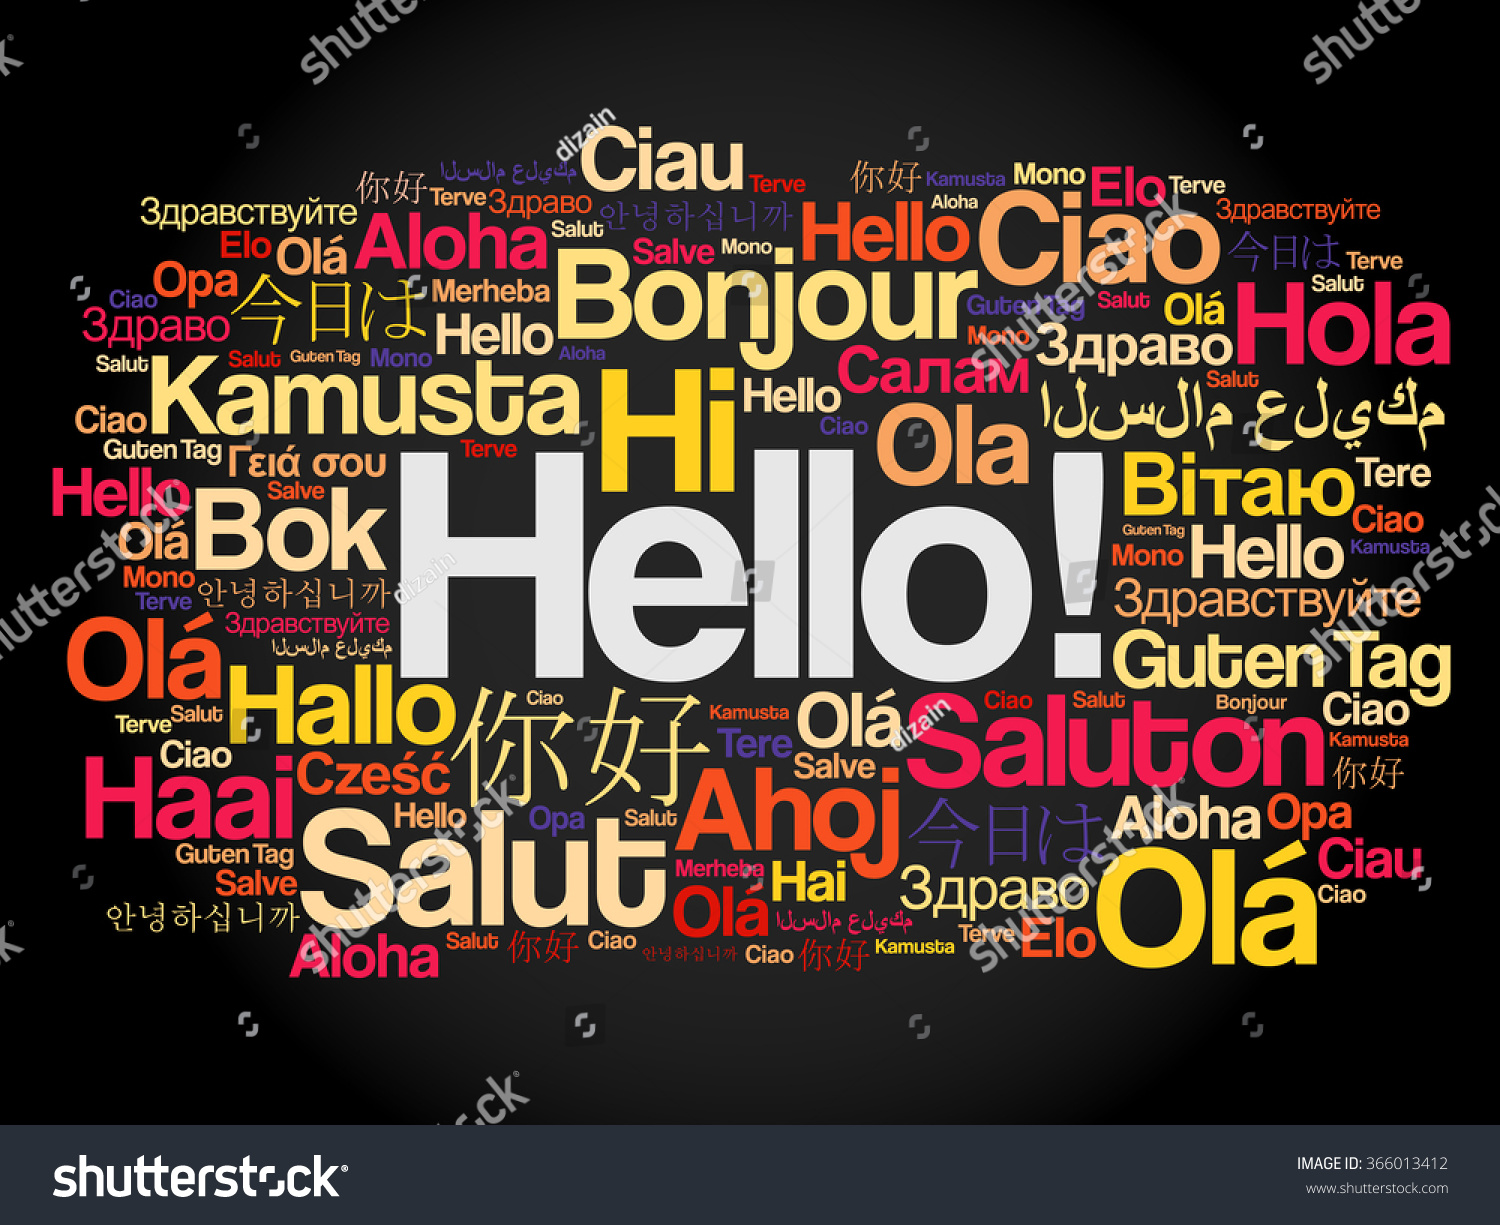 how to say hola in different languages